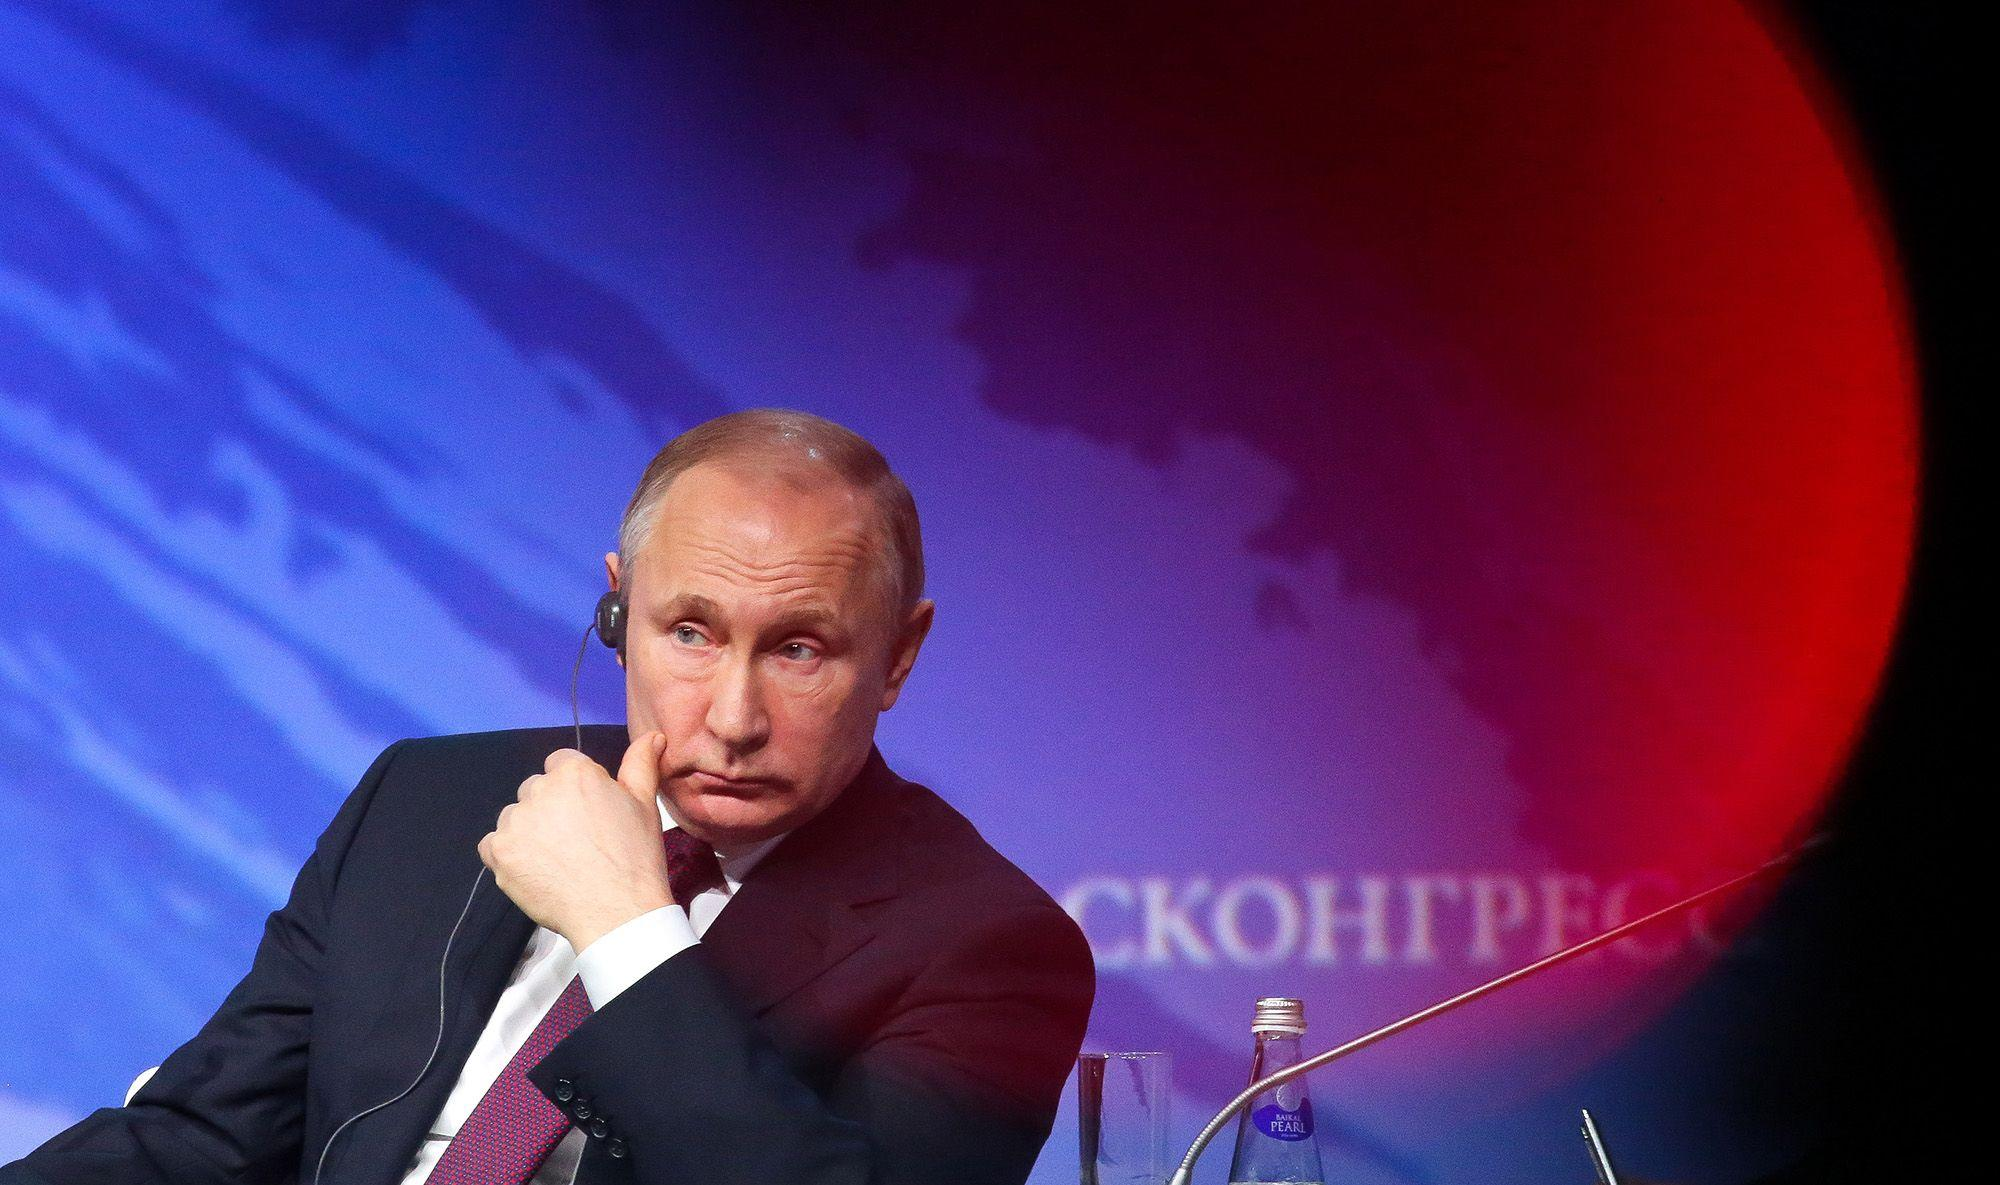 Vladimir Putin insists Russia is complying with WADA requirements